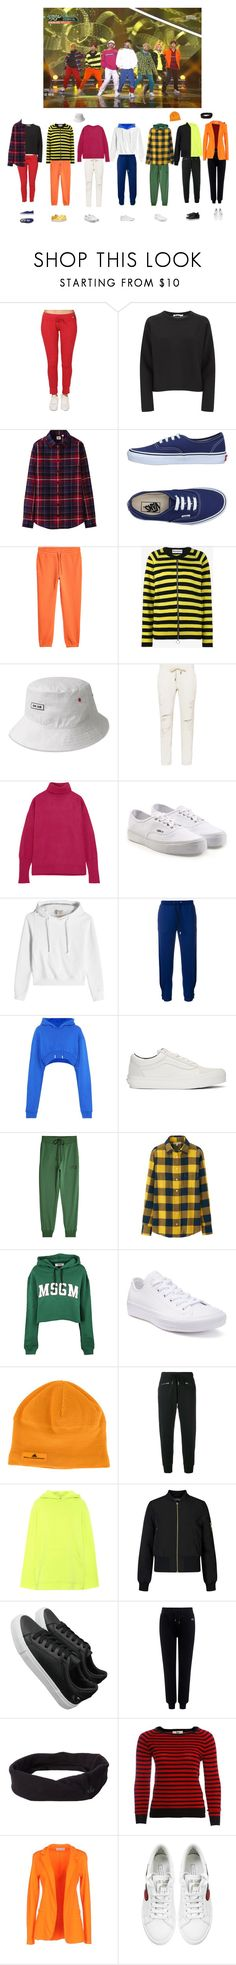 """BTS- go go live"" by mochichimchim ❤ liked on Polyvore featuring T By Alexander Wang, Uniqlo, Vans, Molly Goddard, kangol, NSF, Maison Margiela, Vetements, Versus and Off-White"